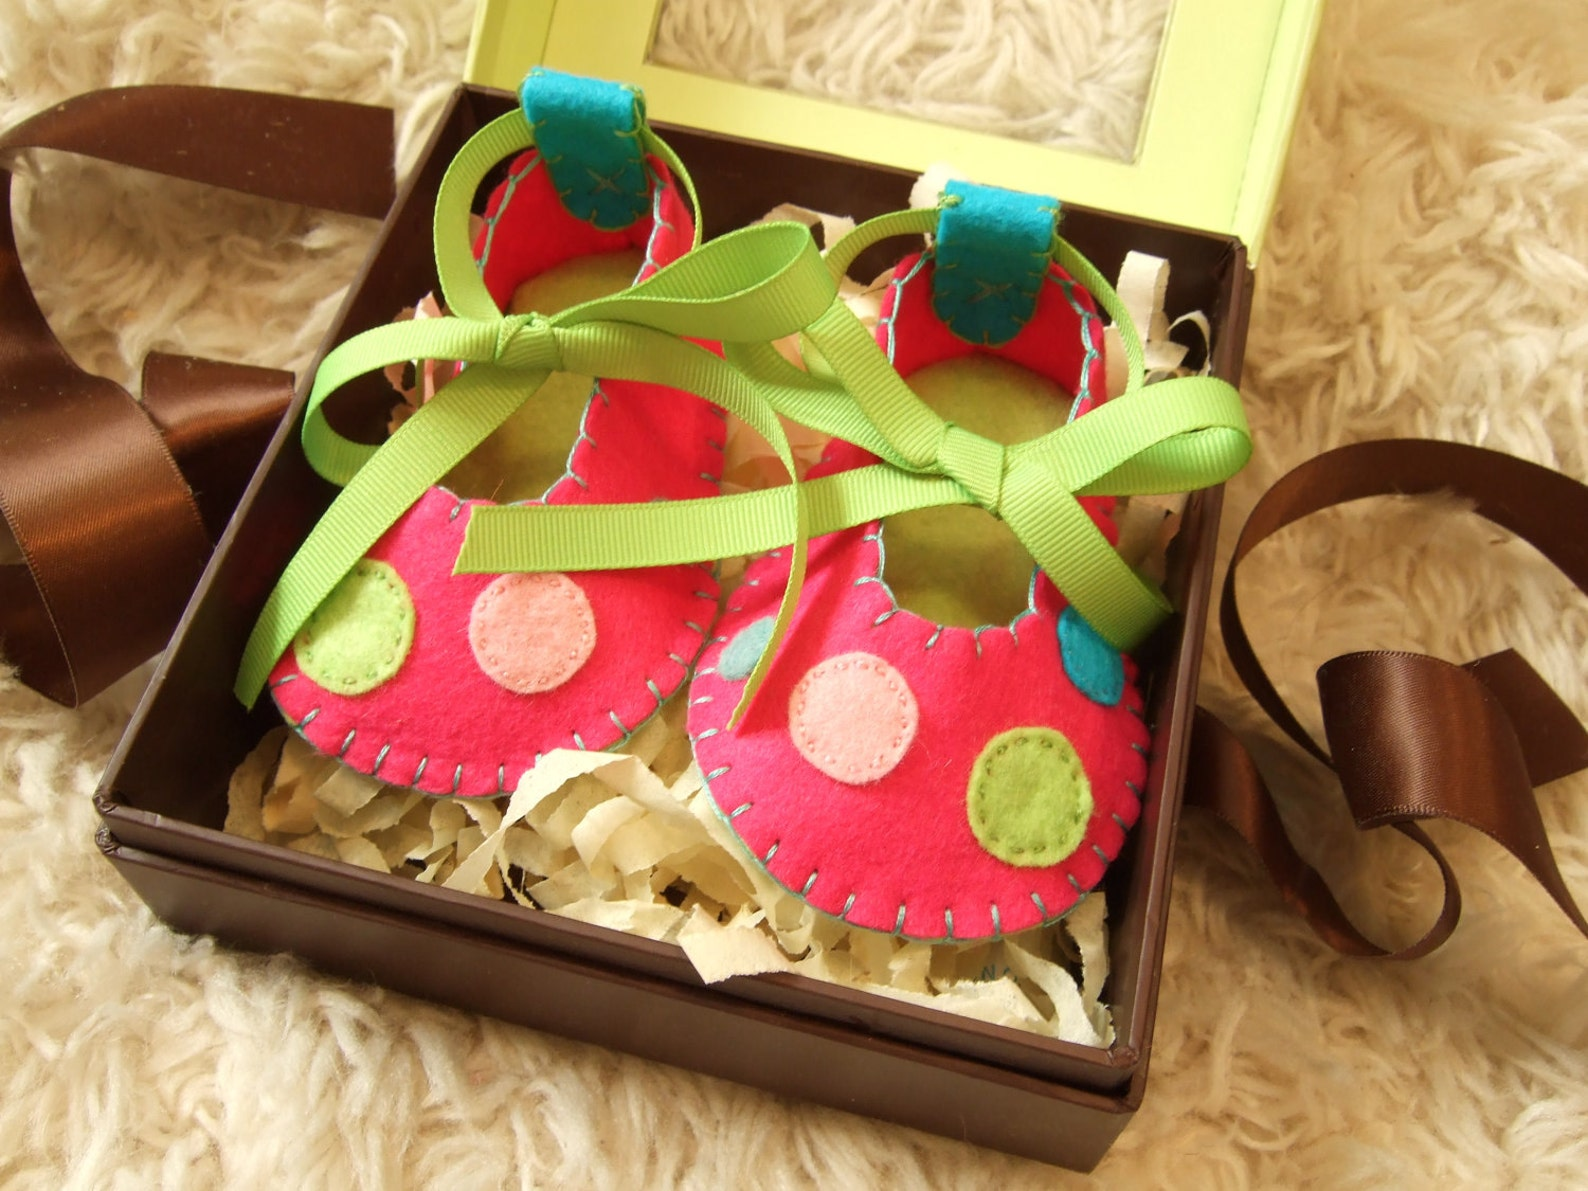 hot pink and lime green ballet flats with polka dots - felt baby shoes - can be personalized